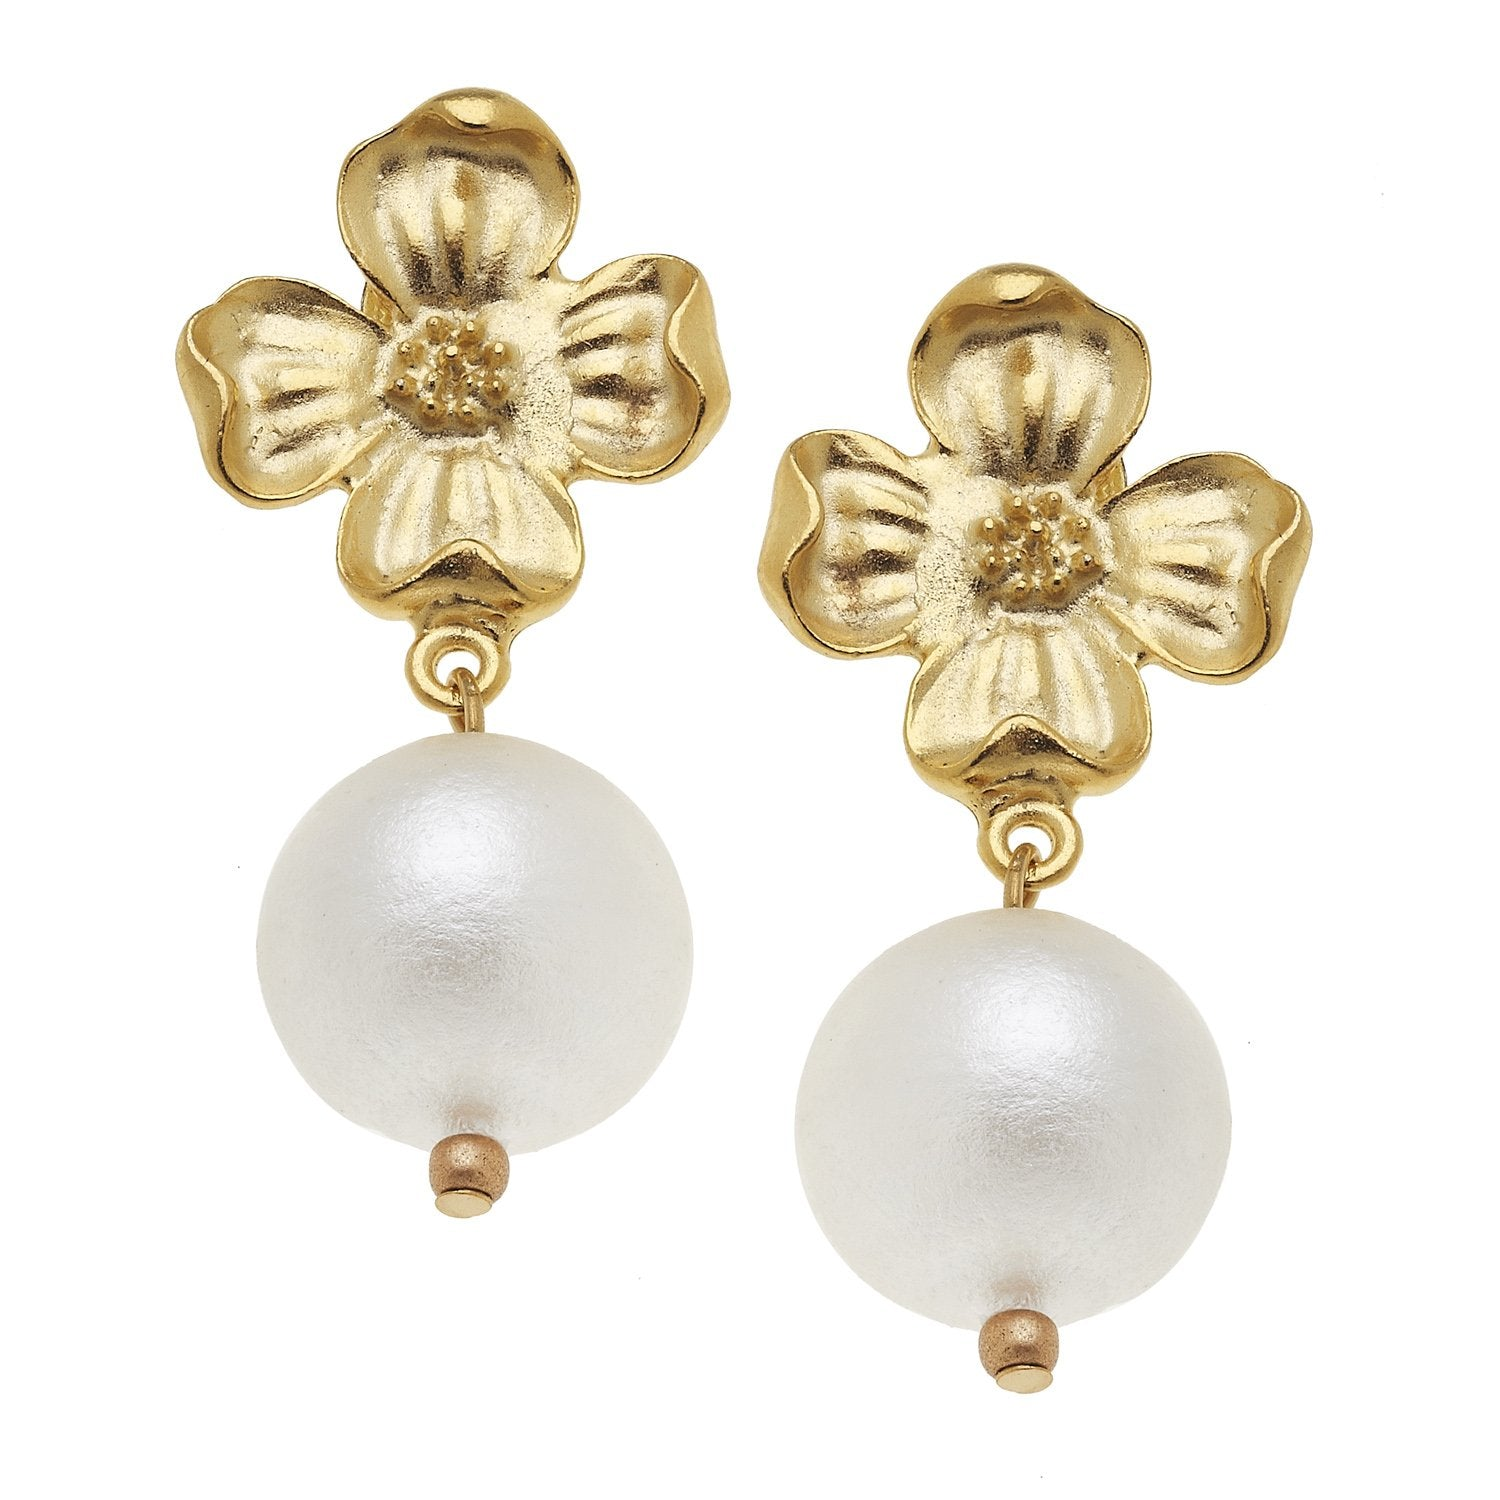 Dogwood Cotton Pearl Earrings